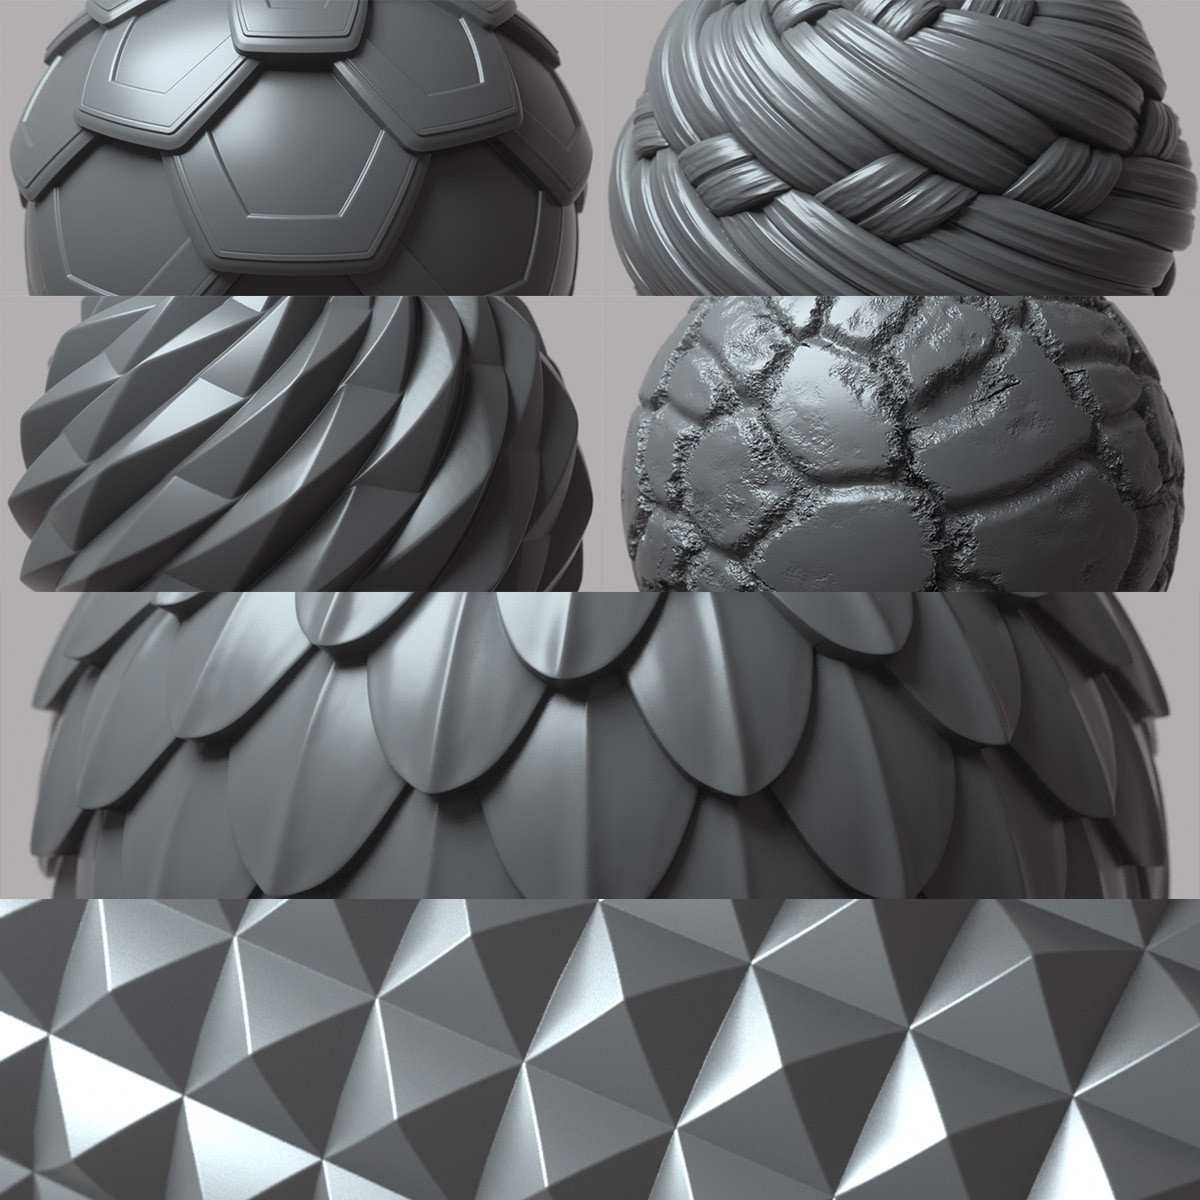 100%20tileable%20displacement%20patterns%20preview%206